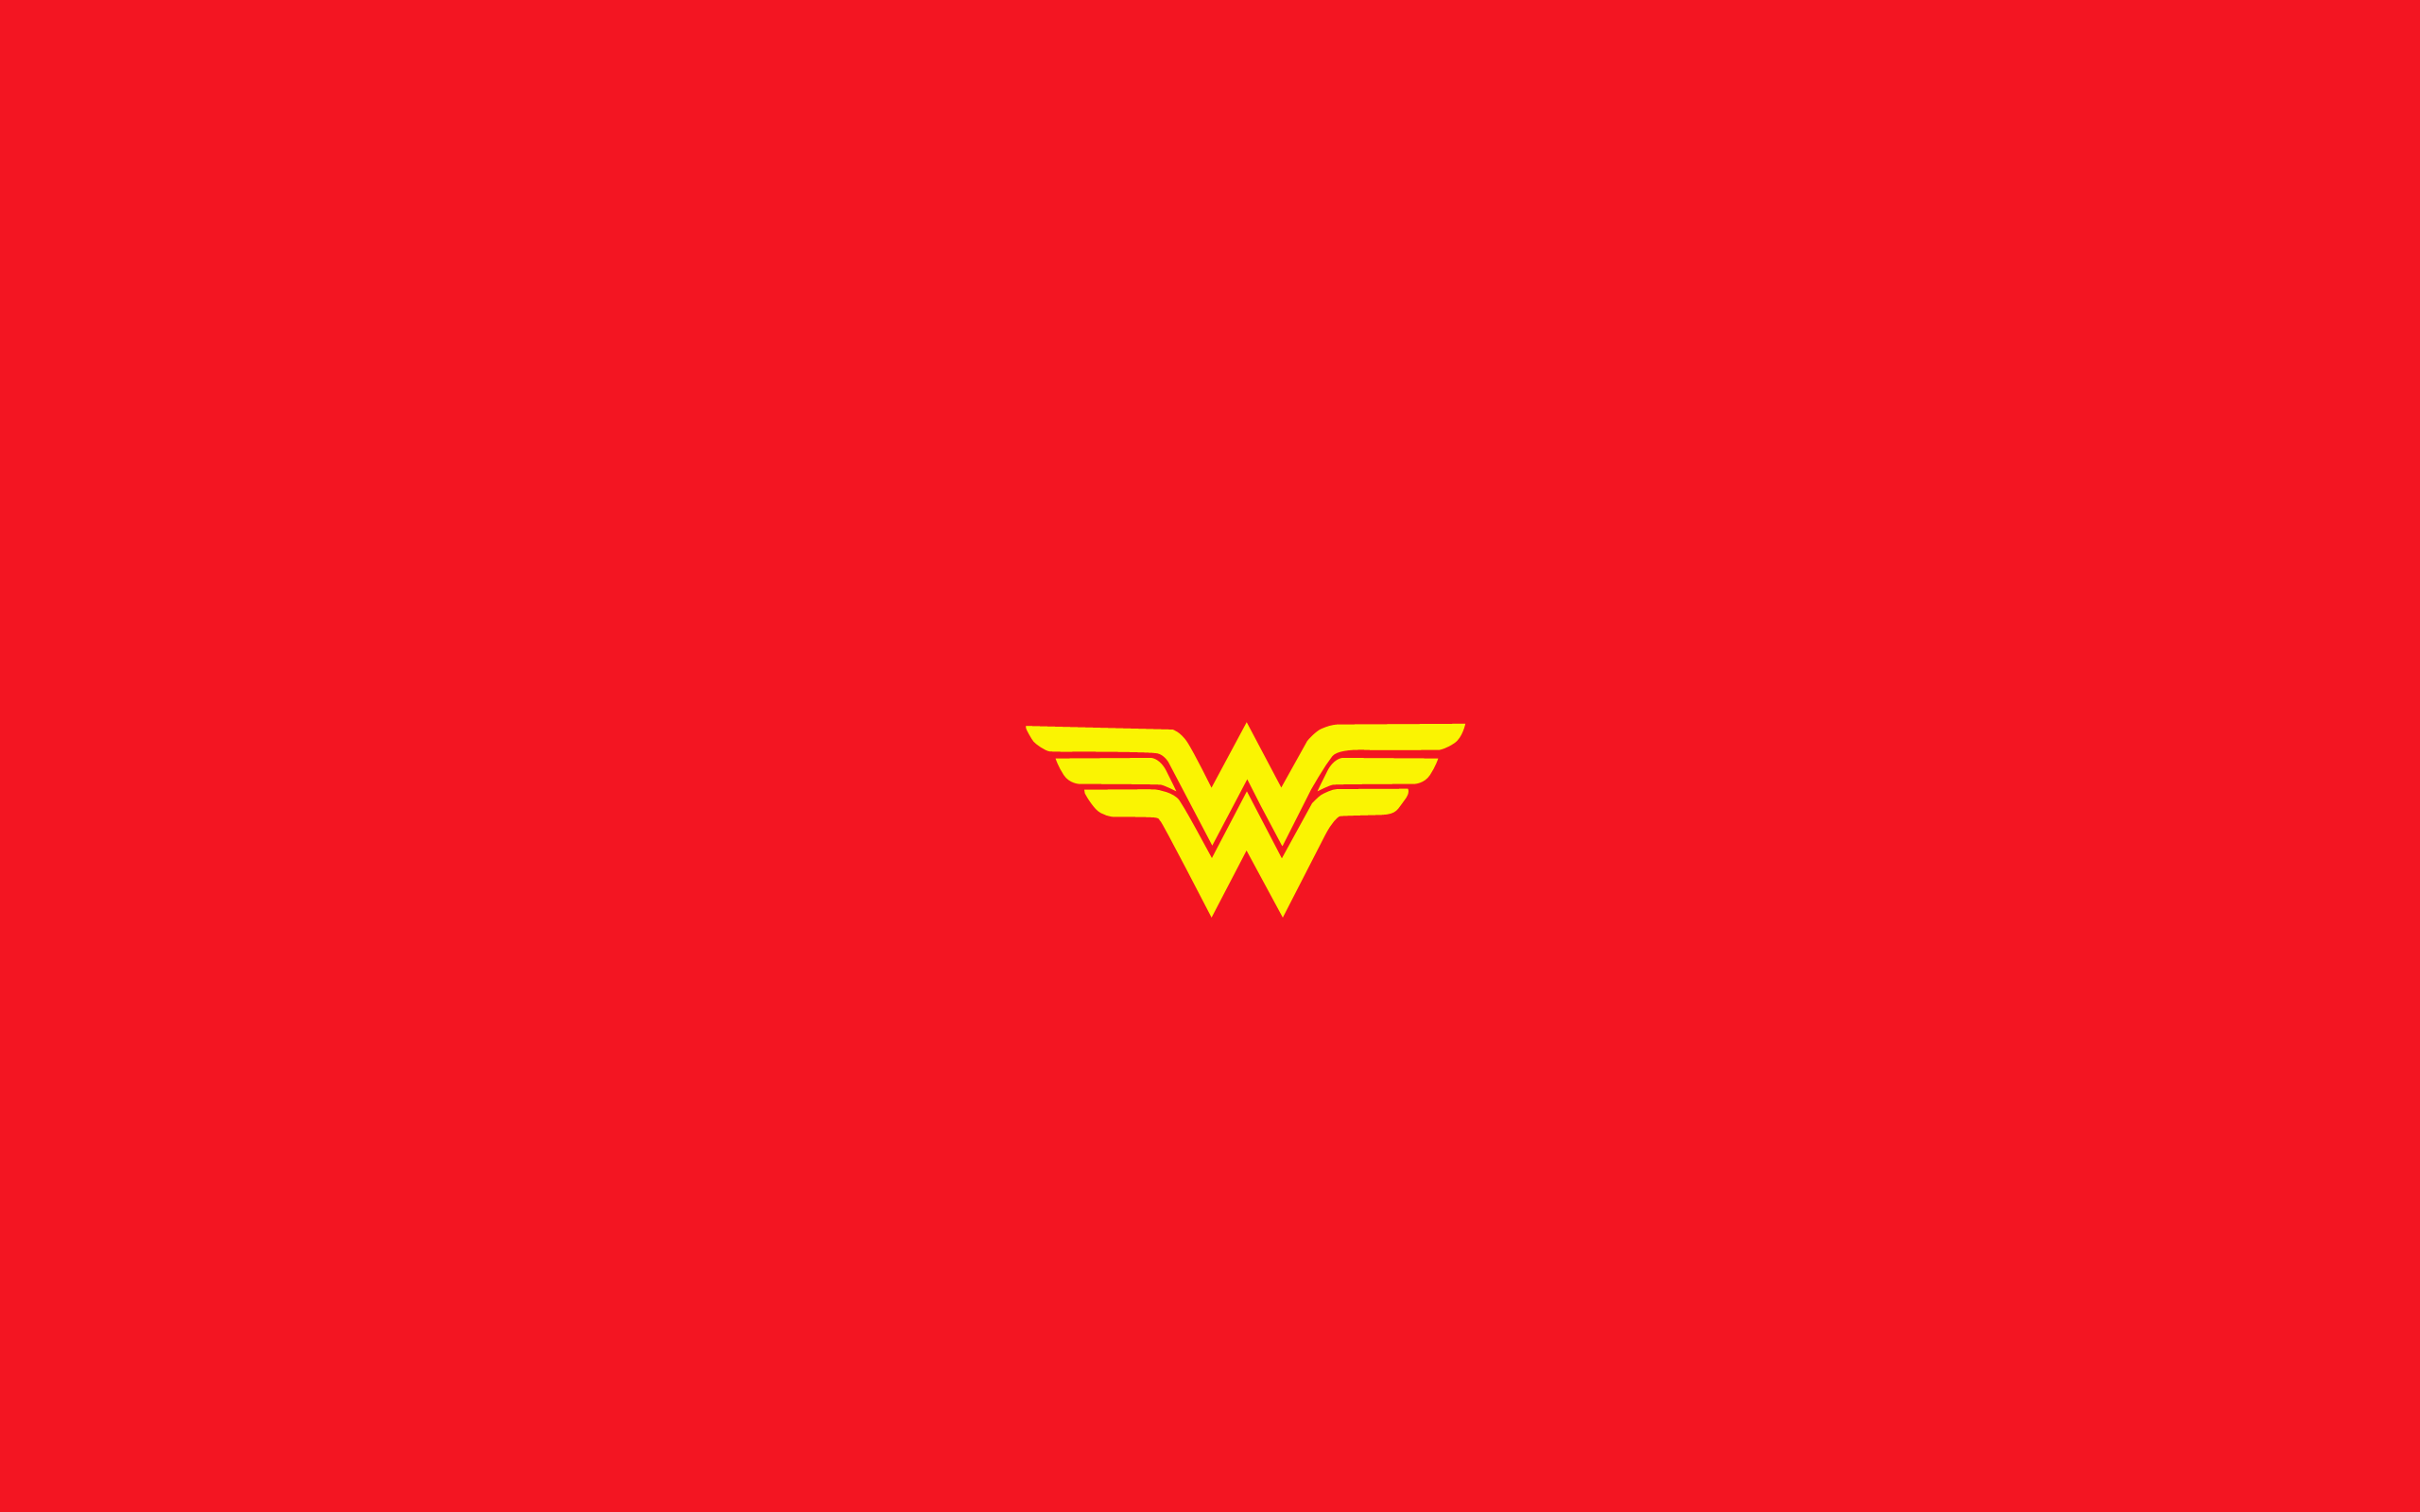 central wallpaper wonder woman - photo #30